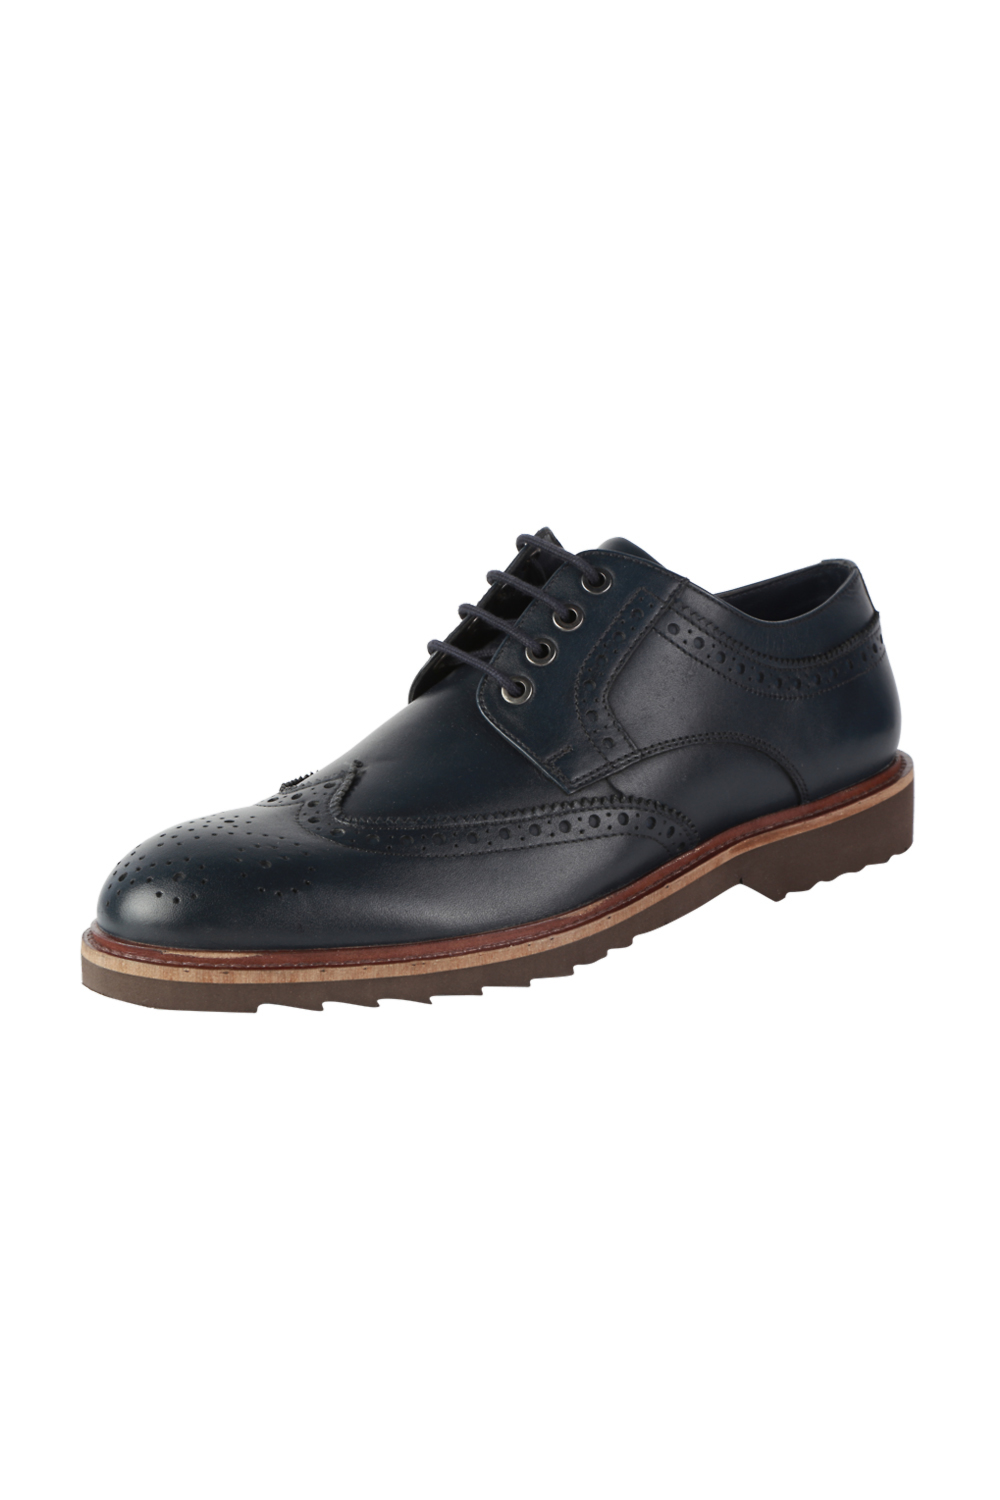 Van Heusen Blue Casual Shoes e6bbe515a